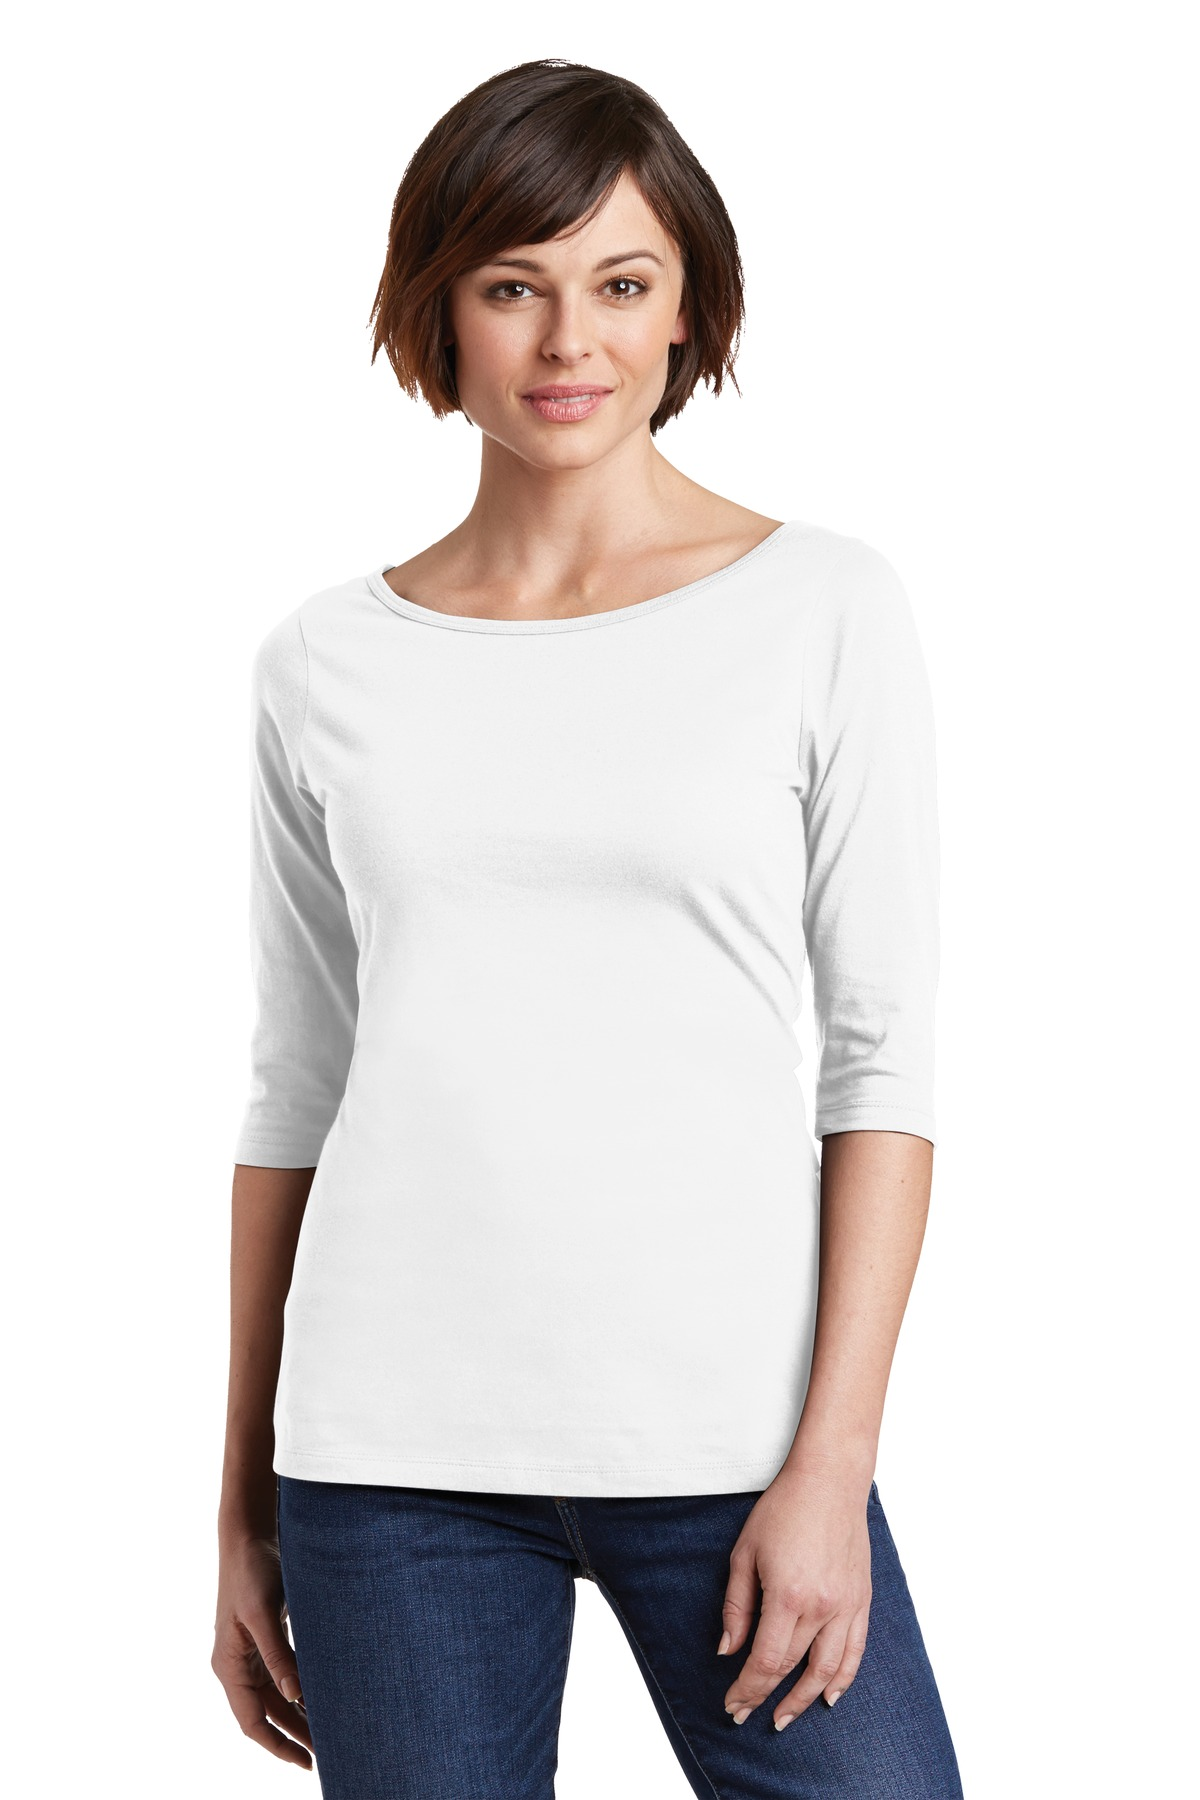 District Made  Ladies Perfect Weight  DM107L - 3/4 Sleeve ...